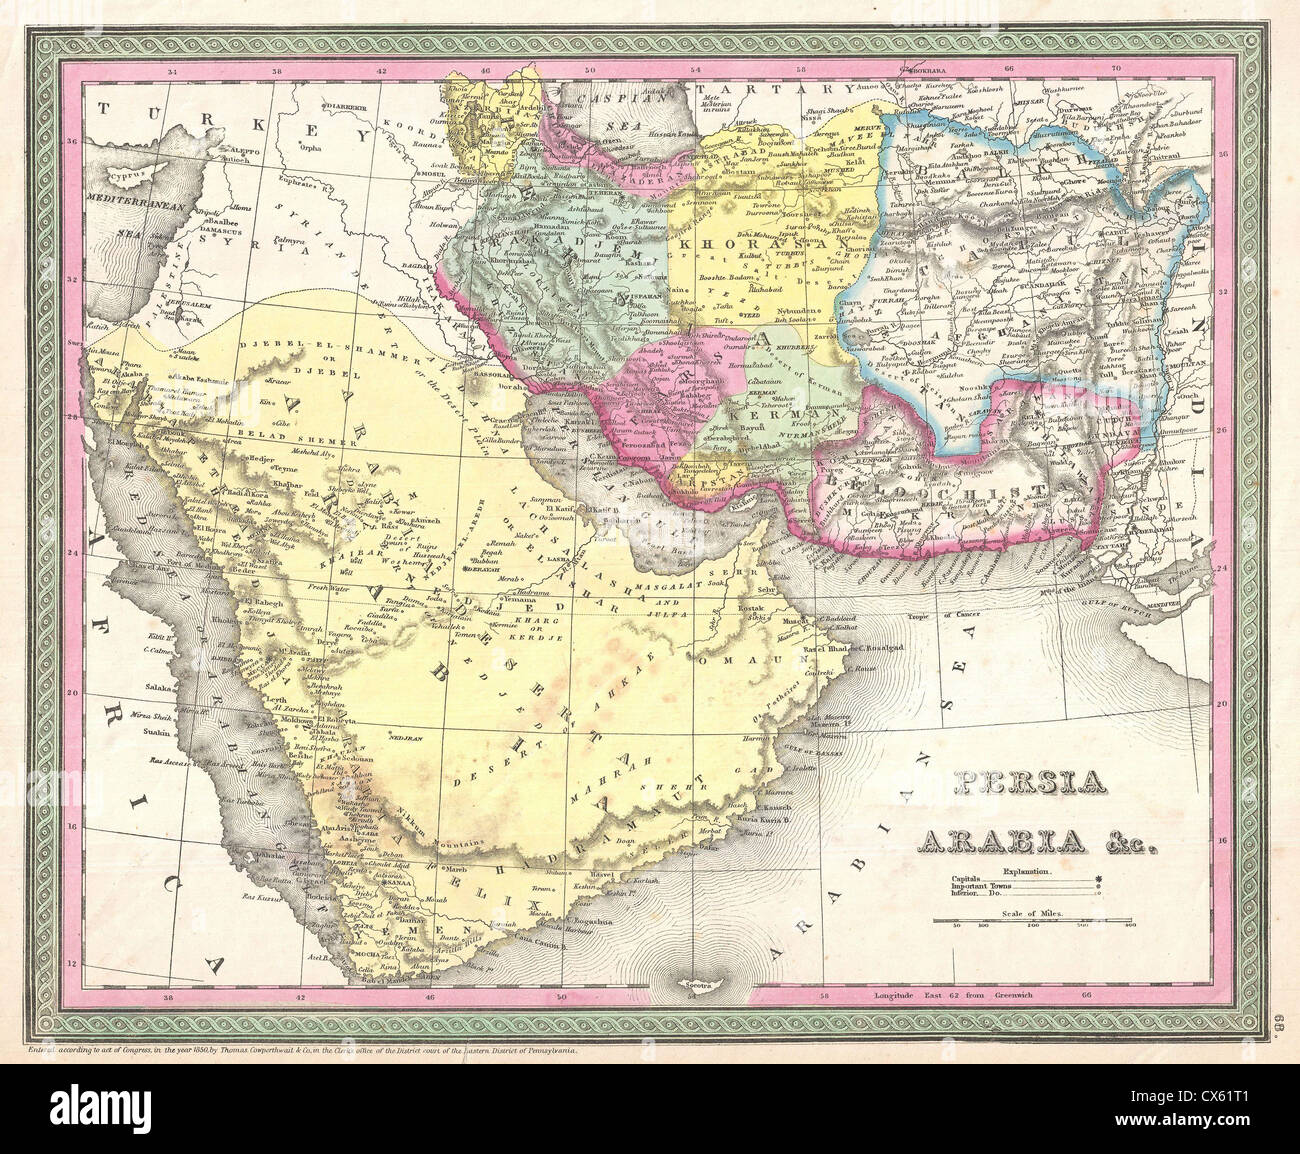 1850 Mitchell Map Of Arabia Persia Afghanistan Photo – Map of Arabia